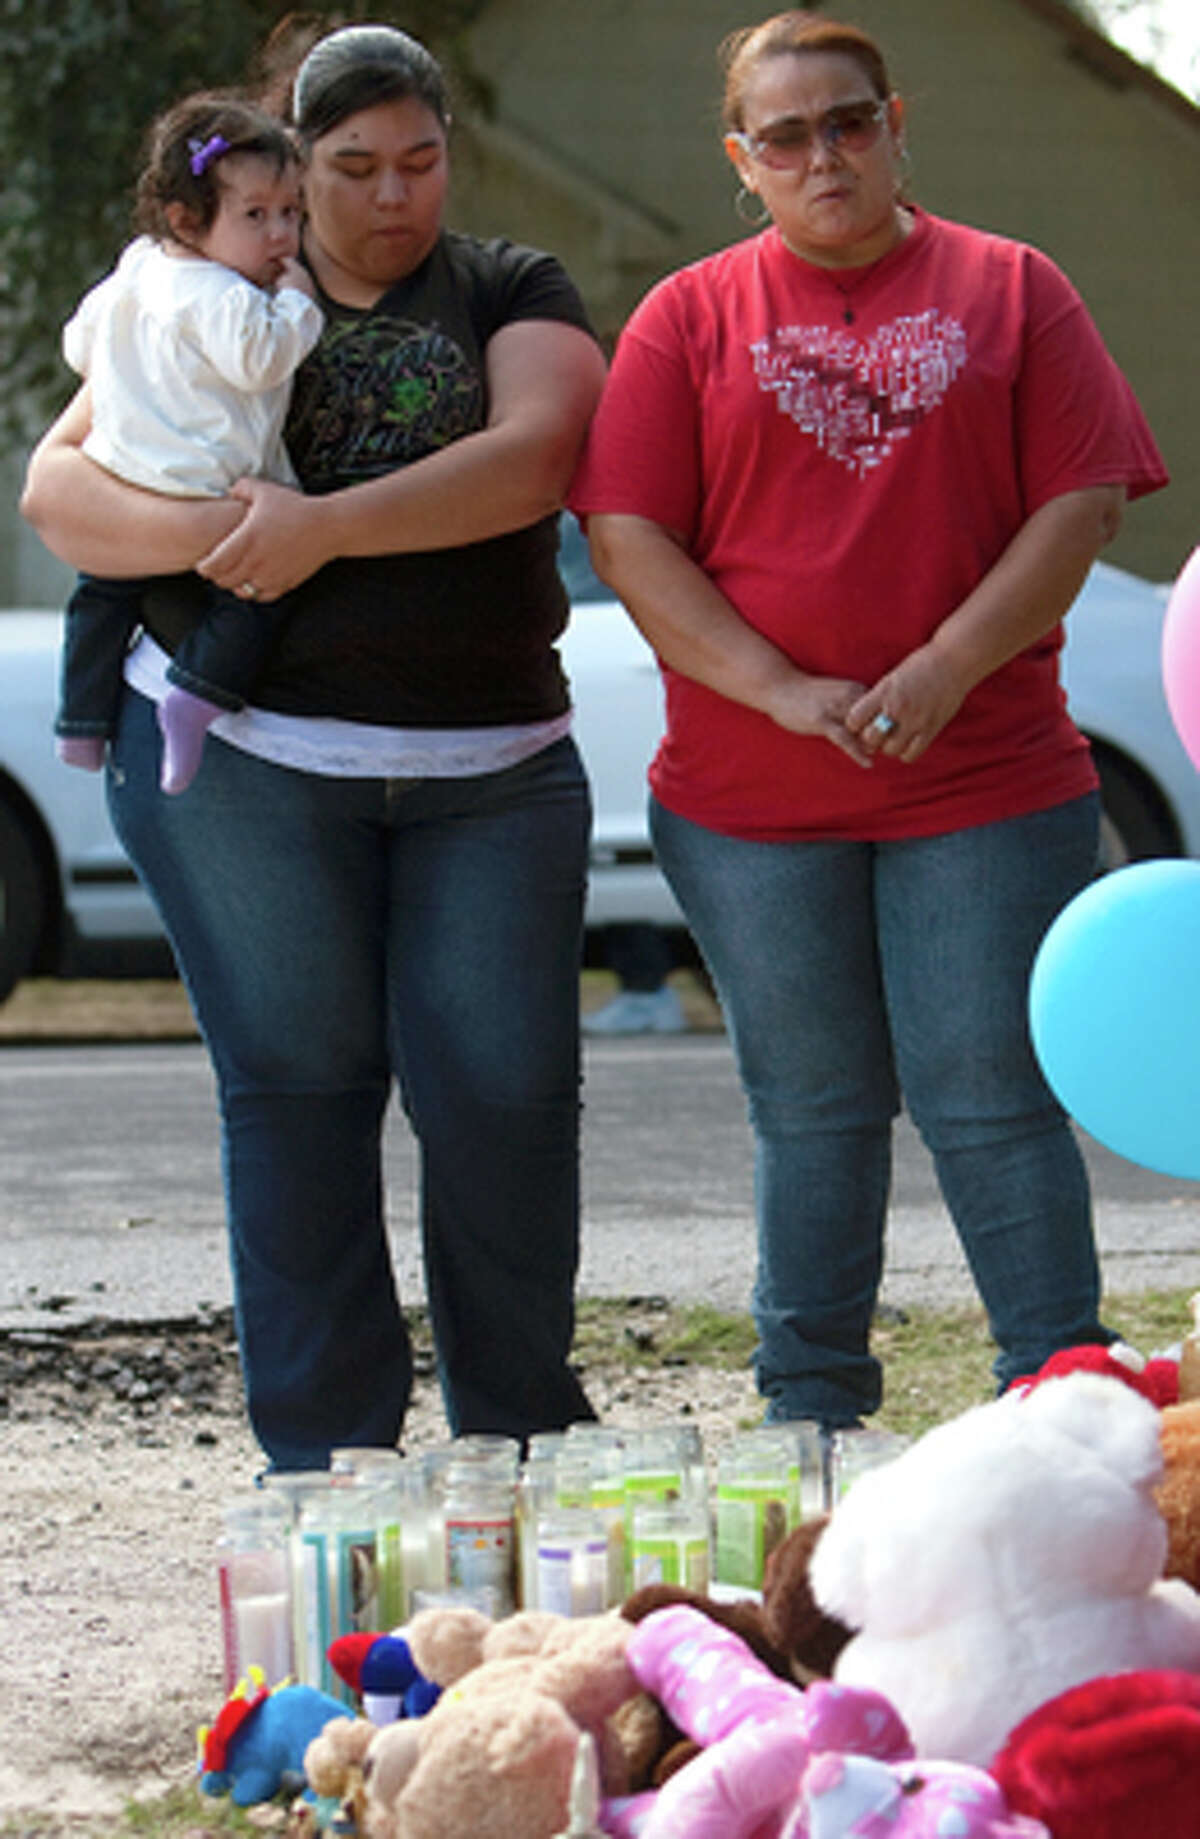 Cynthia Guzman holds her 10-month-old daughter Jolizzah Guzman, while her mom, Gloria Carranza, says a prayer in front of the home of victims that were shot outside their home Thursday, Dec. 1, 2011, in Bay City. Guzman stopped along with her mother, not pictured, because they know what it's like to know to lose a loved one.